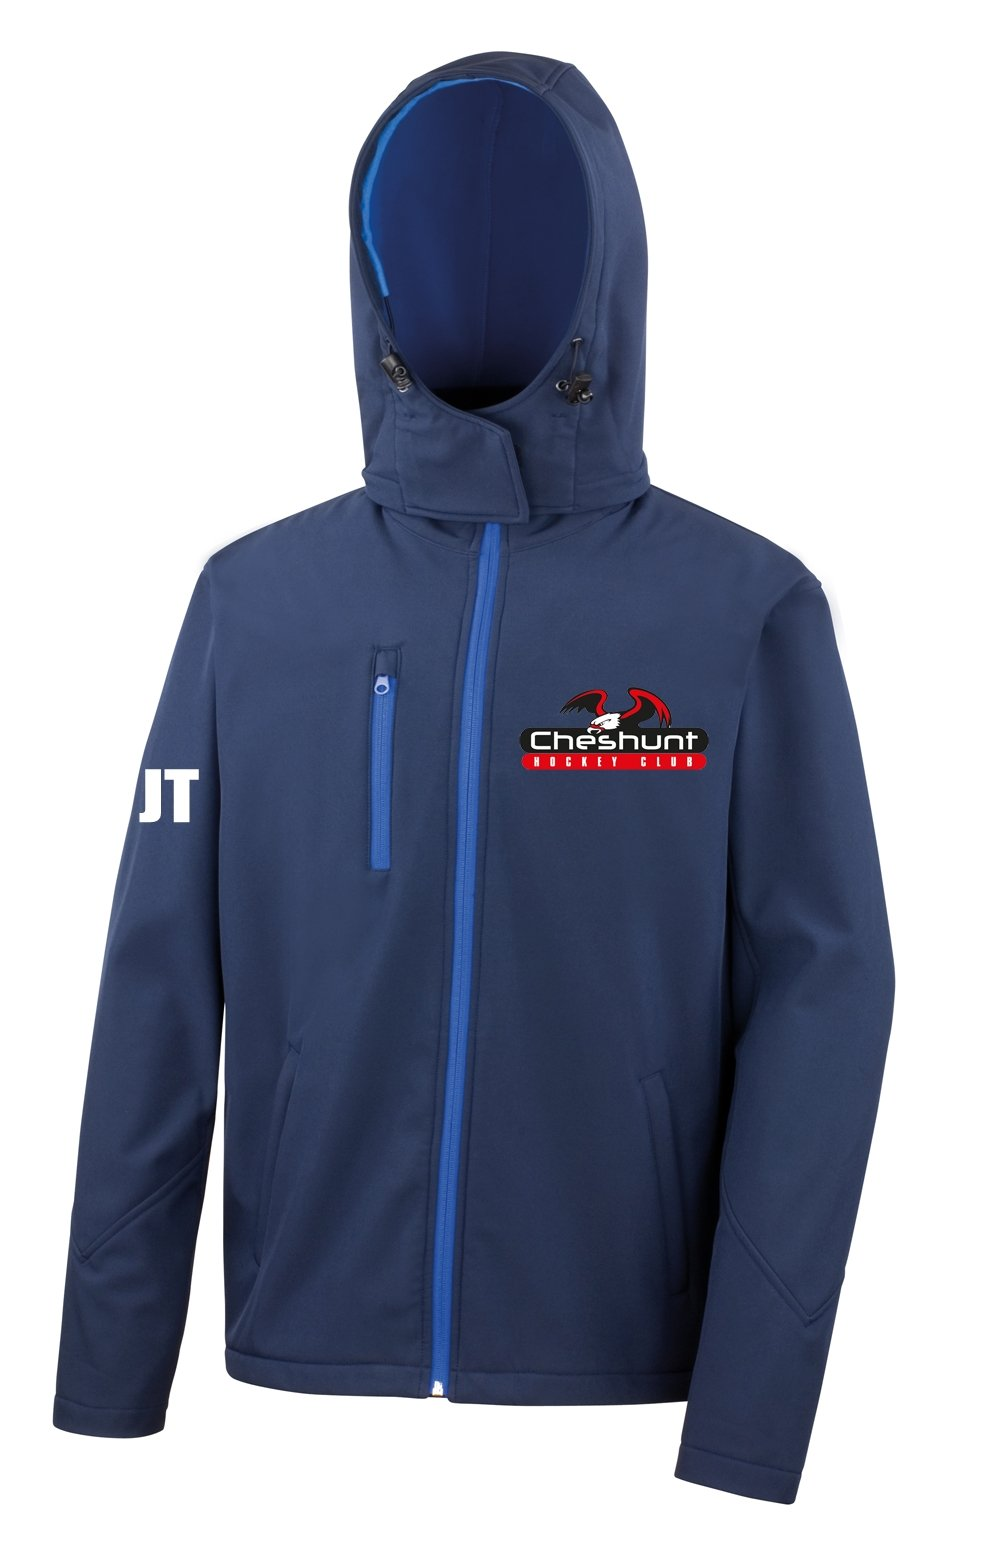 Cheshunt Soft Shell Jacket